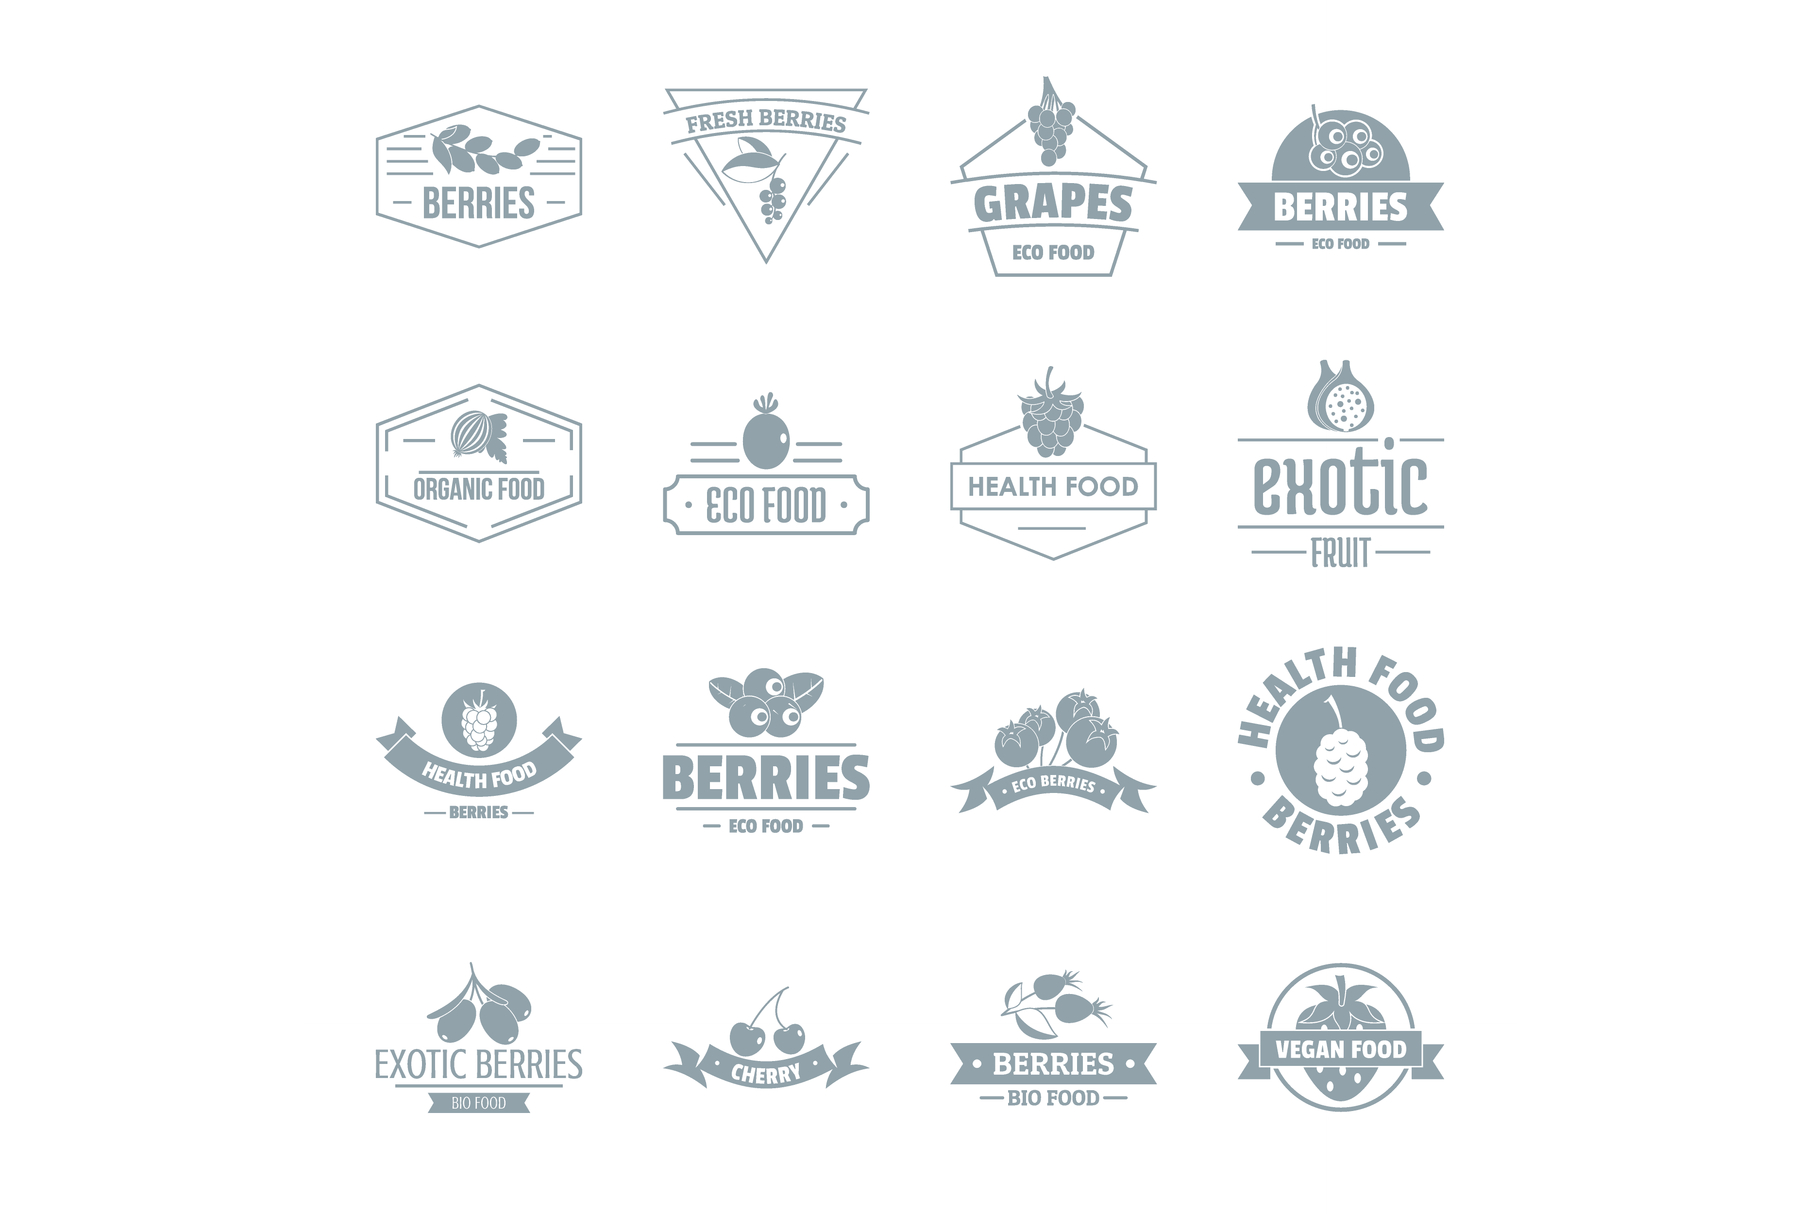 Berries logo icons set, simple style example image 1